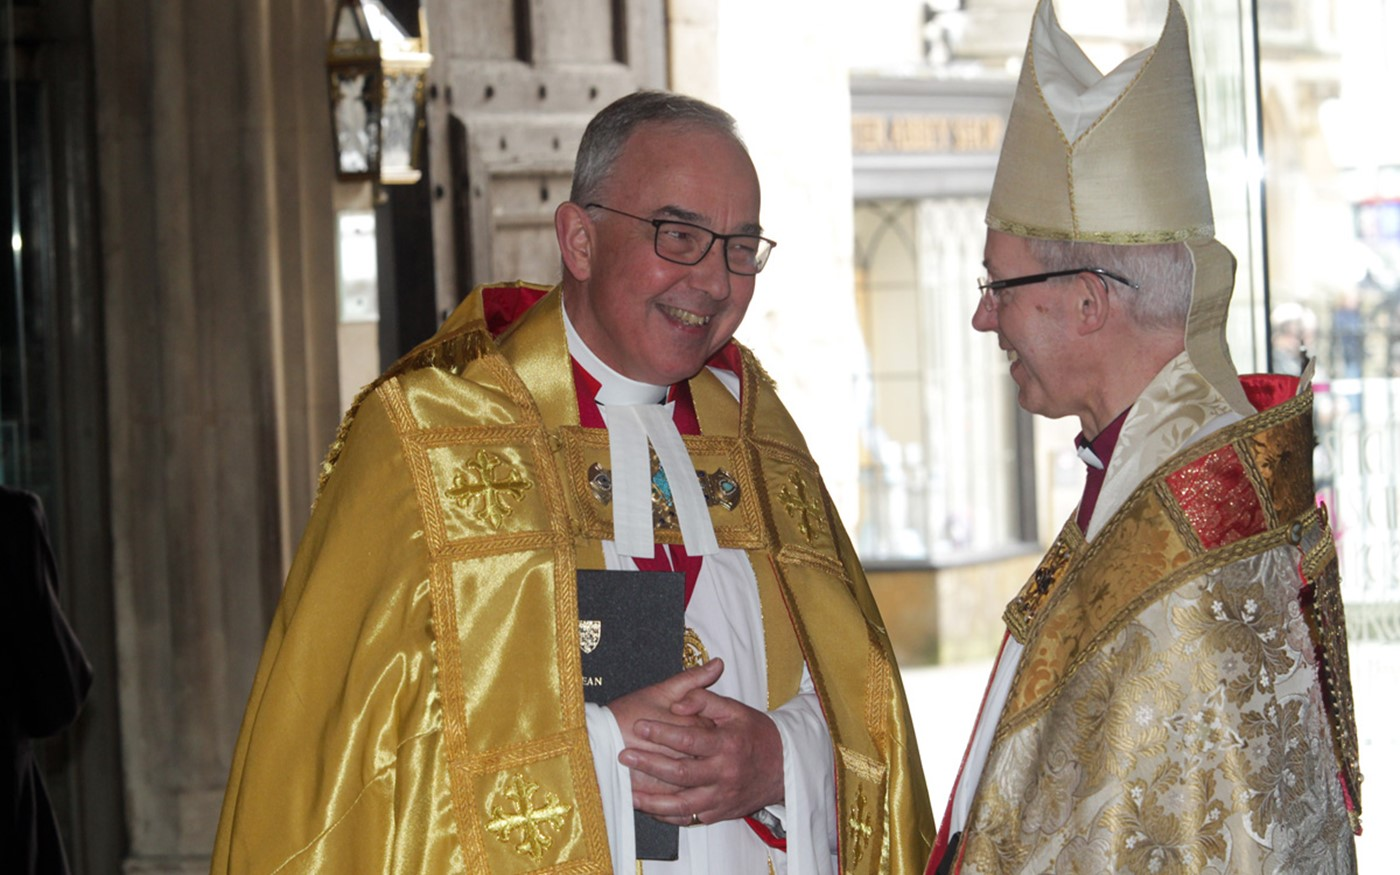 The Very Reverend Dr John Hall, The Dean of Westminster, with The Most Reverend and Right Honourable Justin Welby, Archbishop of Canterbury, Primate of All England and Metropolitan before the service